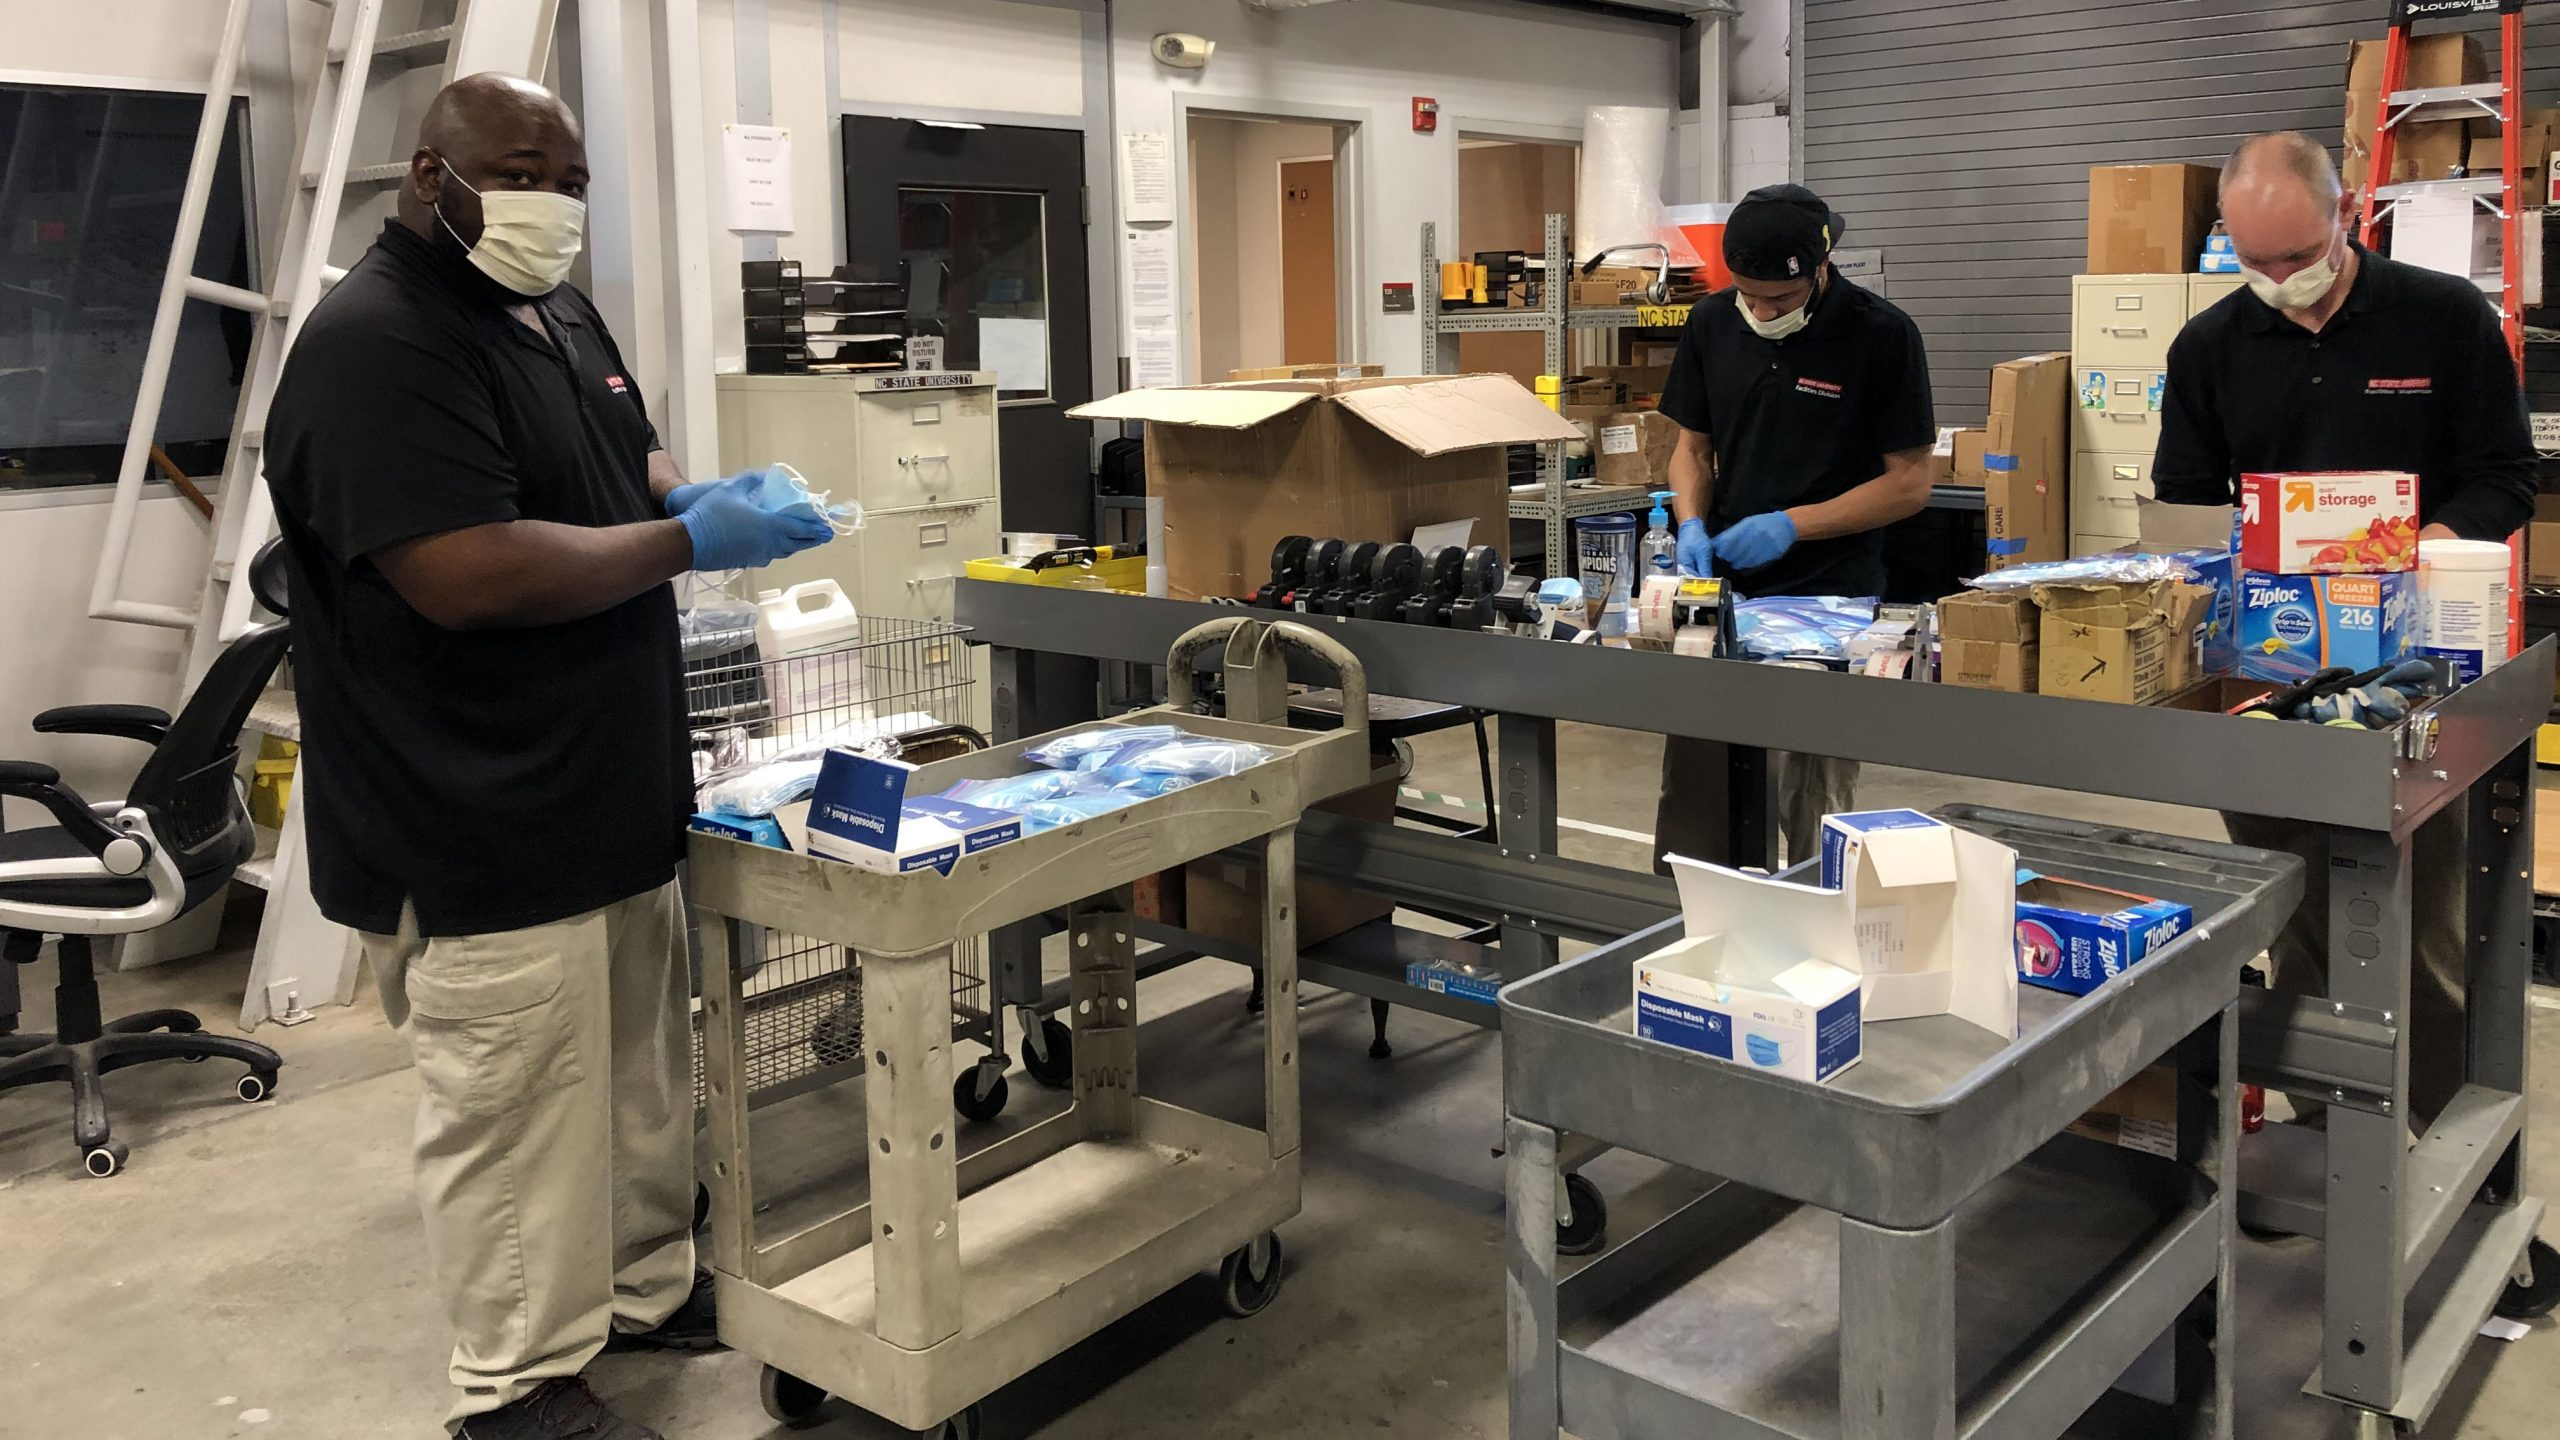 In the campus warehouse, three Facilities employees prepare materials in for workers' welcome kits.